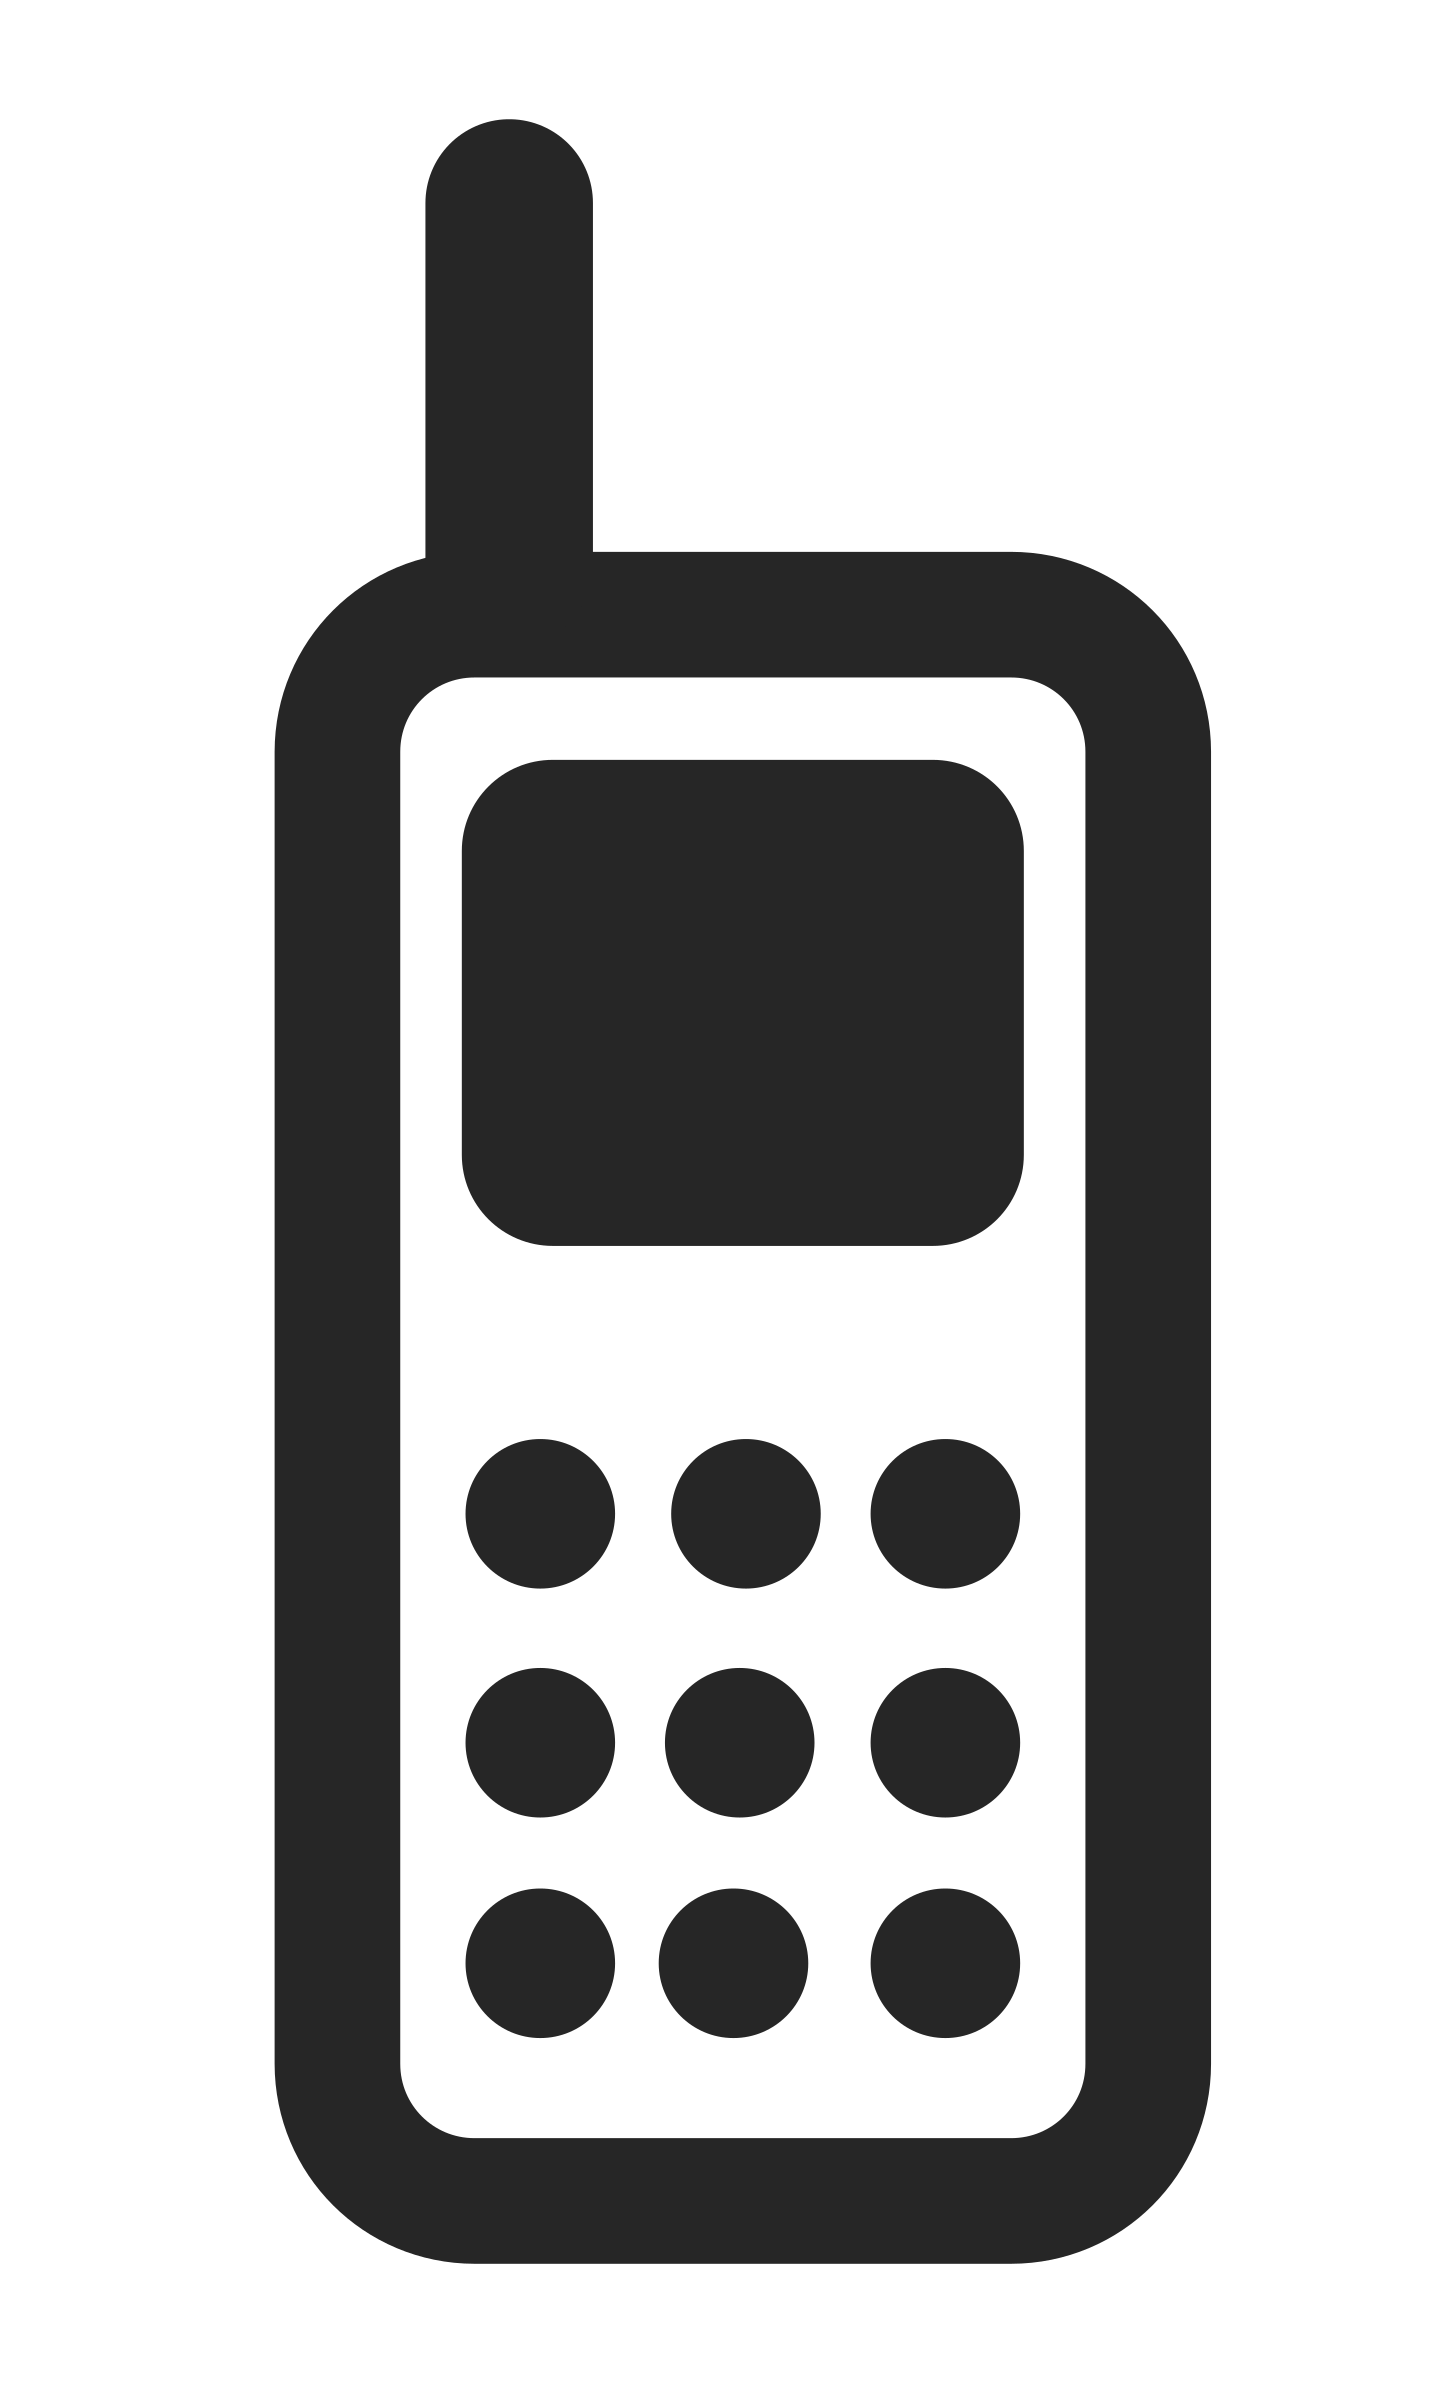 Big image png. Phone clipart mobile phone